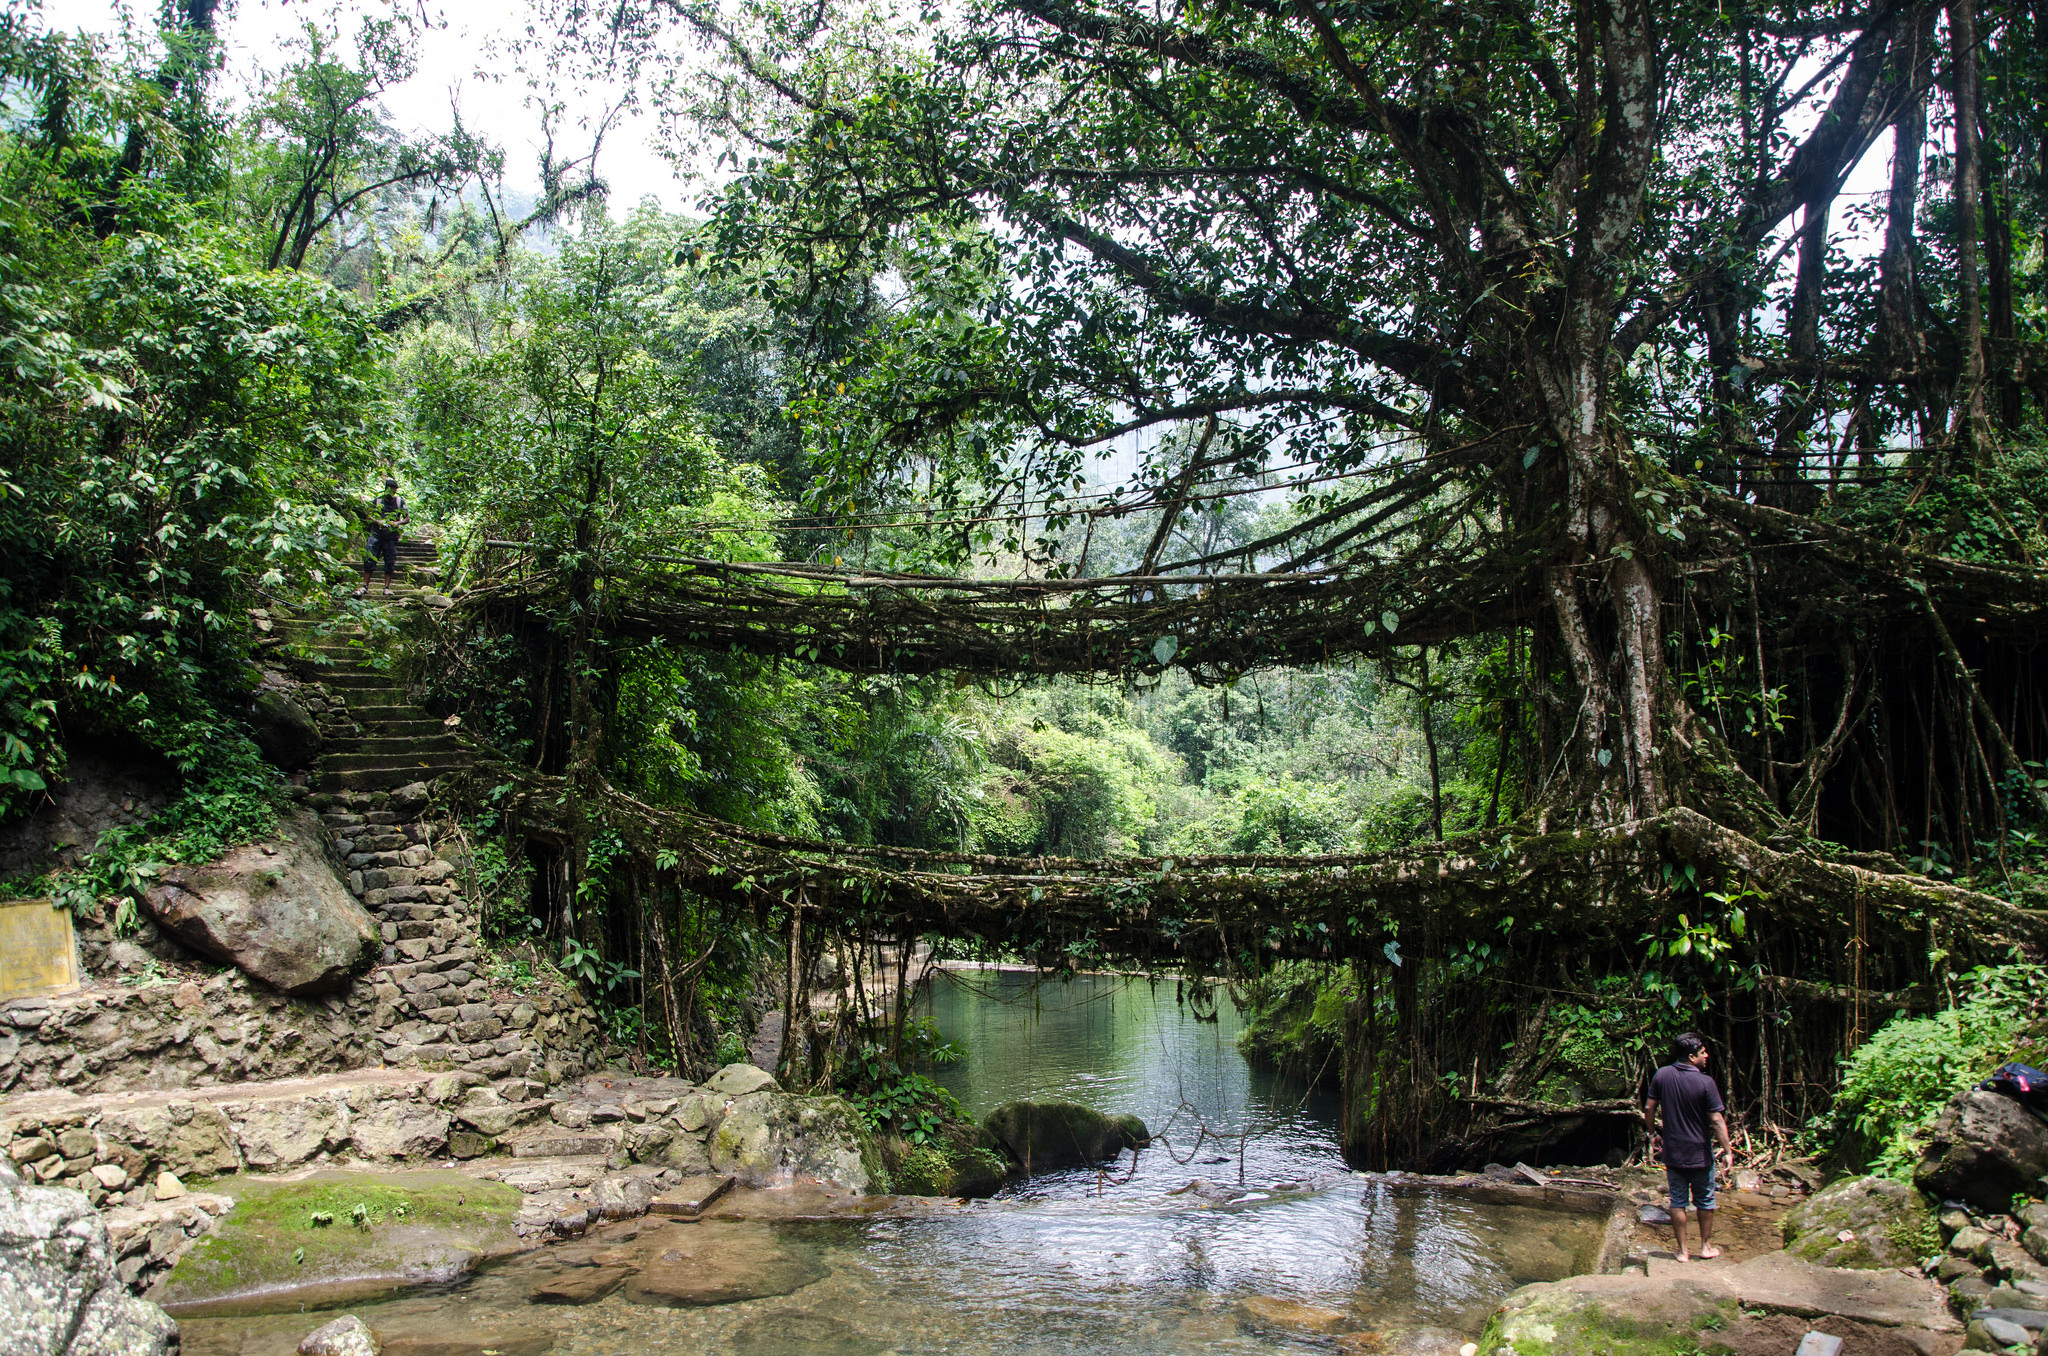 Double Decker Living Root Bridge | © Ashwin Kumar/Flickr